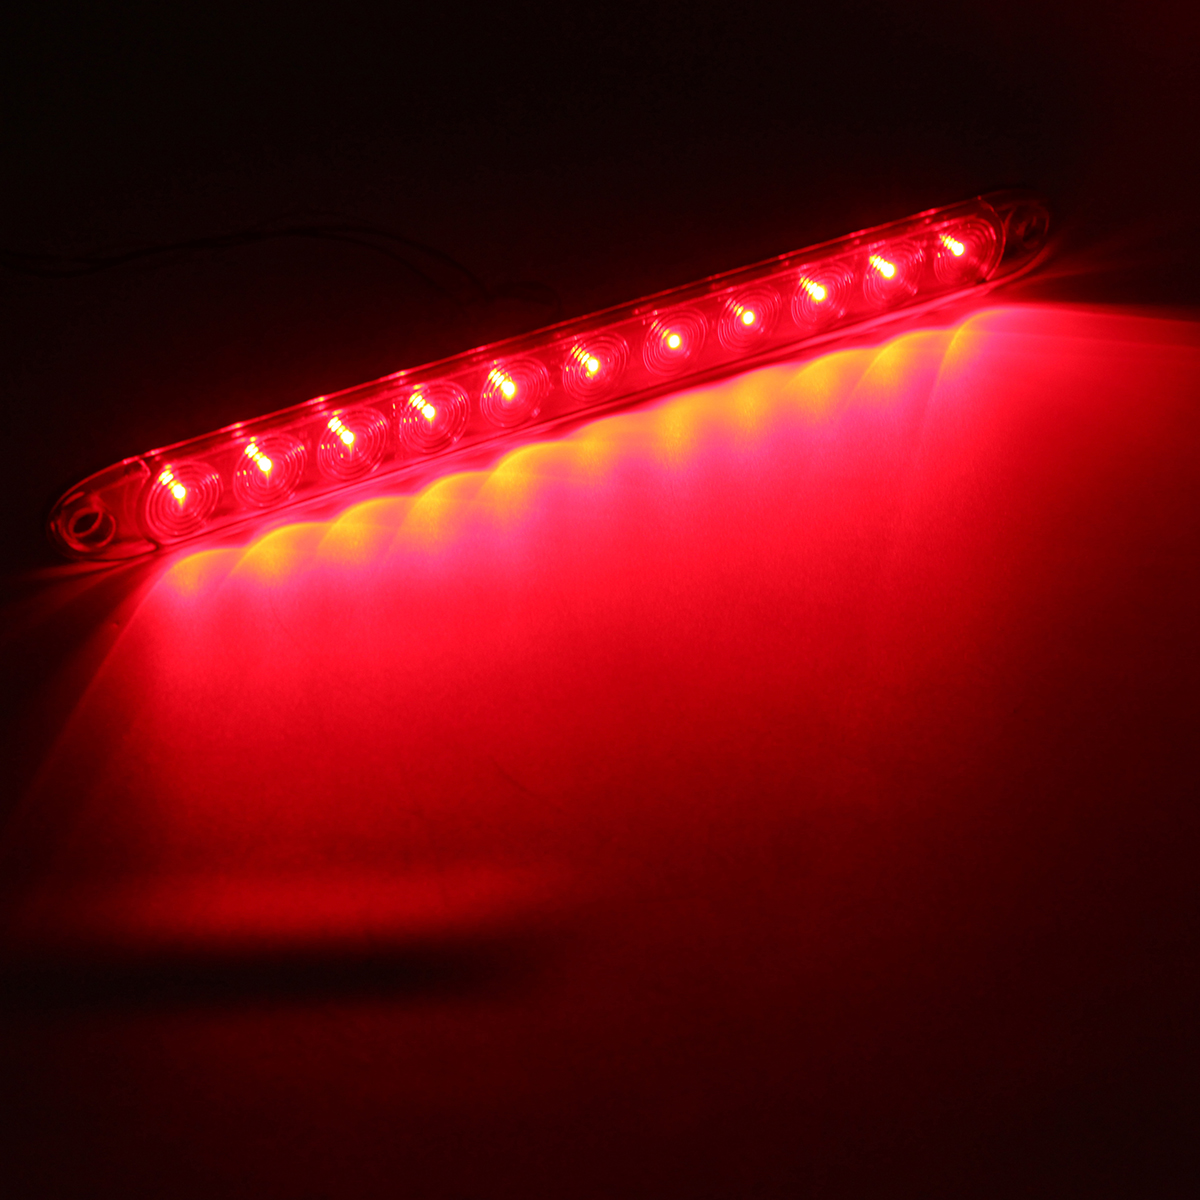 15inch Dc12v Red 4 Wires 11 Led Light Bar Stop Turn Tail 3rd Brake Wiring Third On Truck Cap Ce932596 Ef91 4b05 9795 C9aabd135e8e